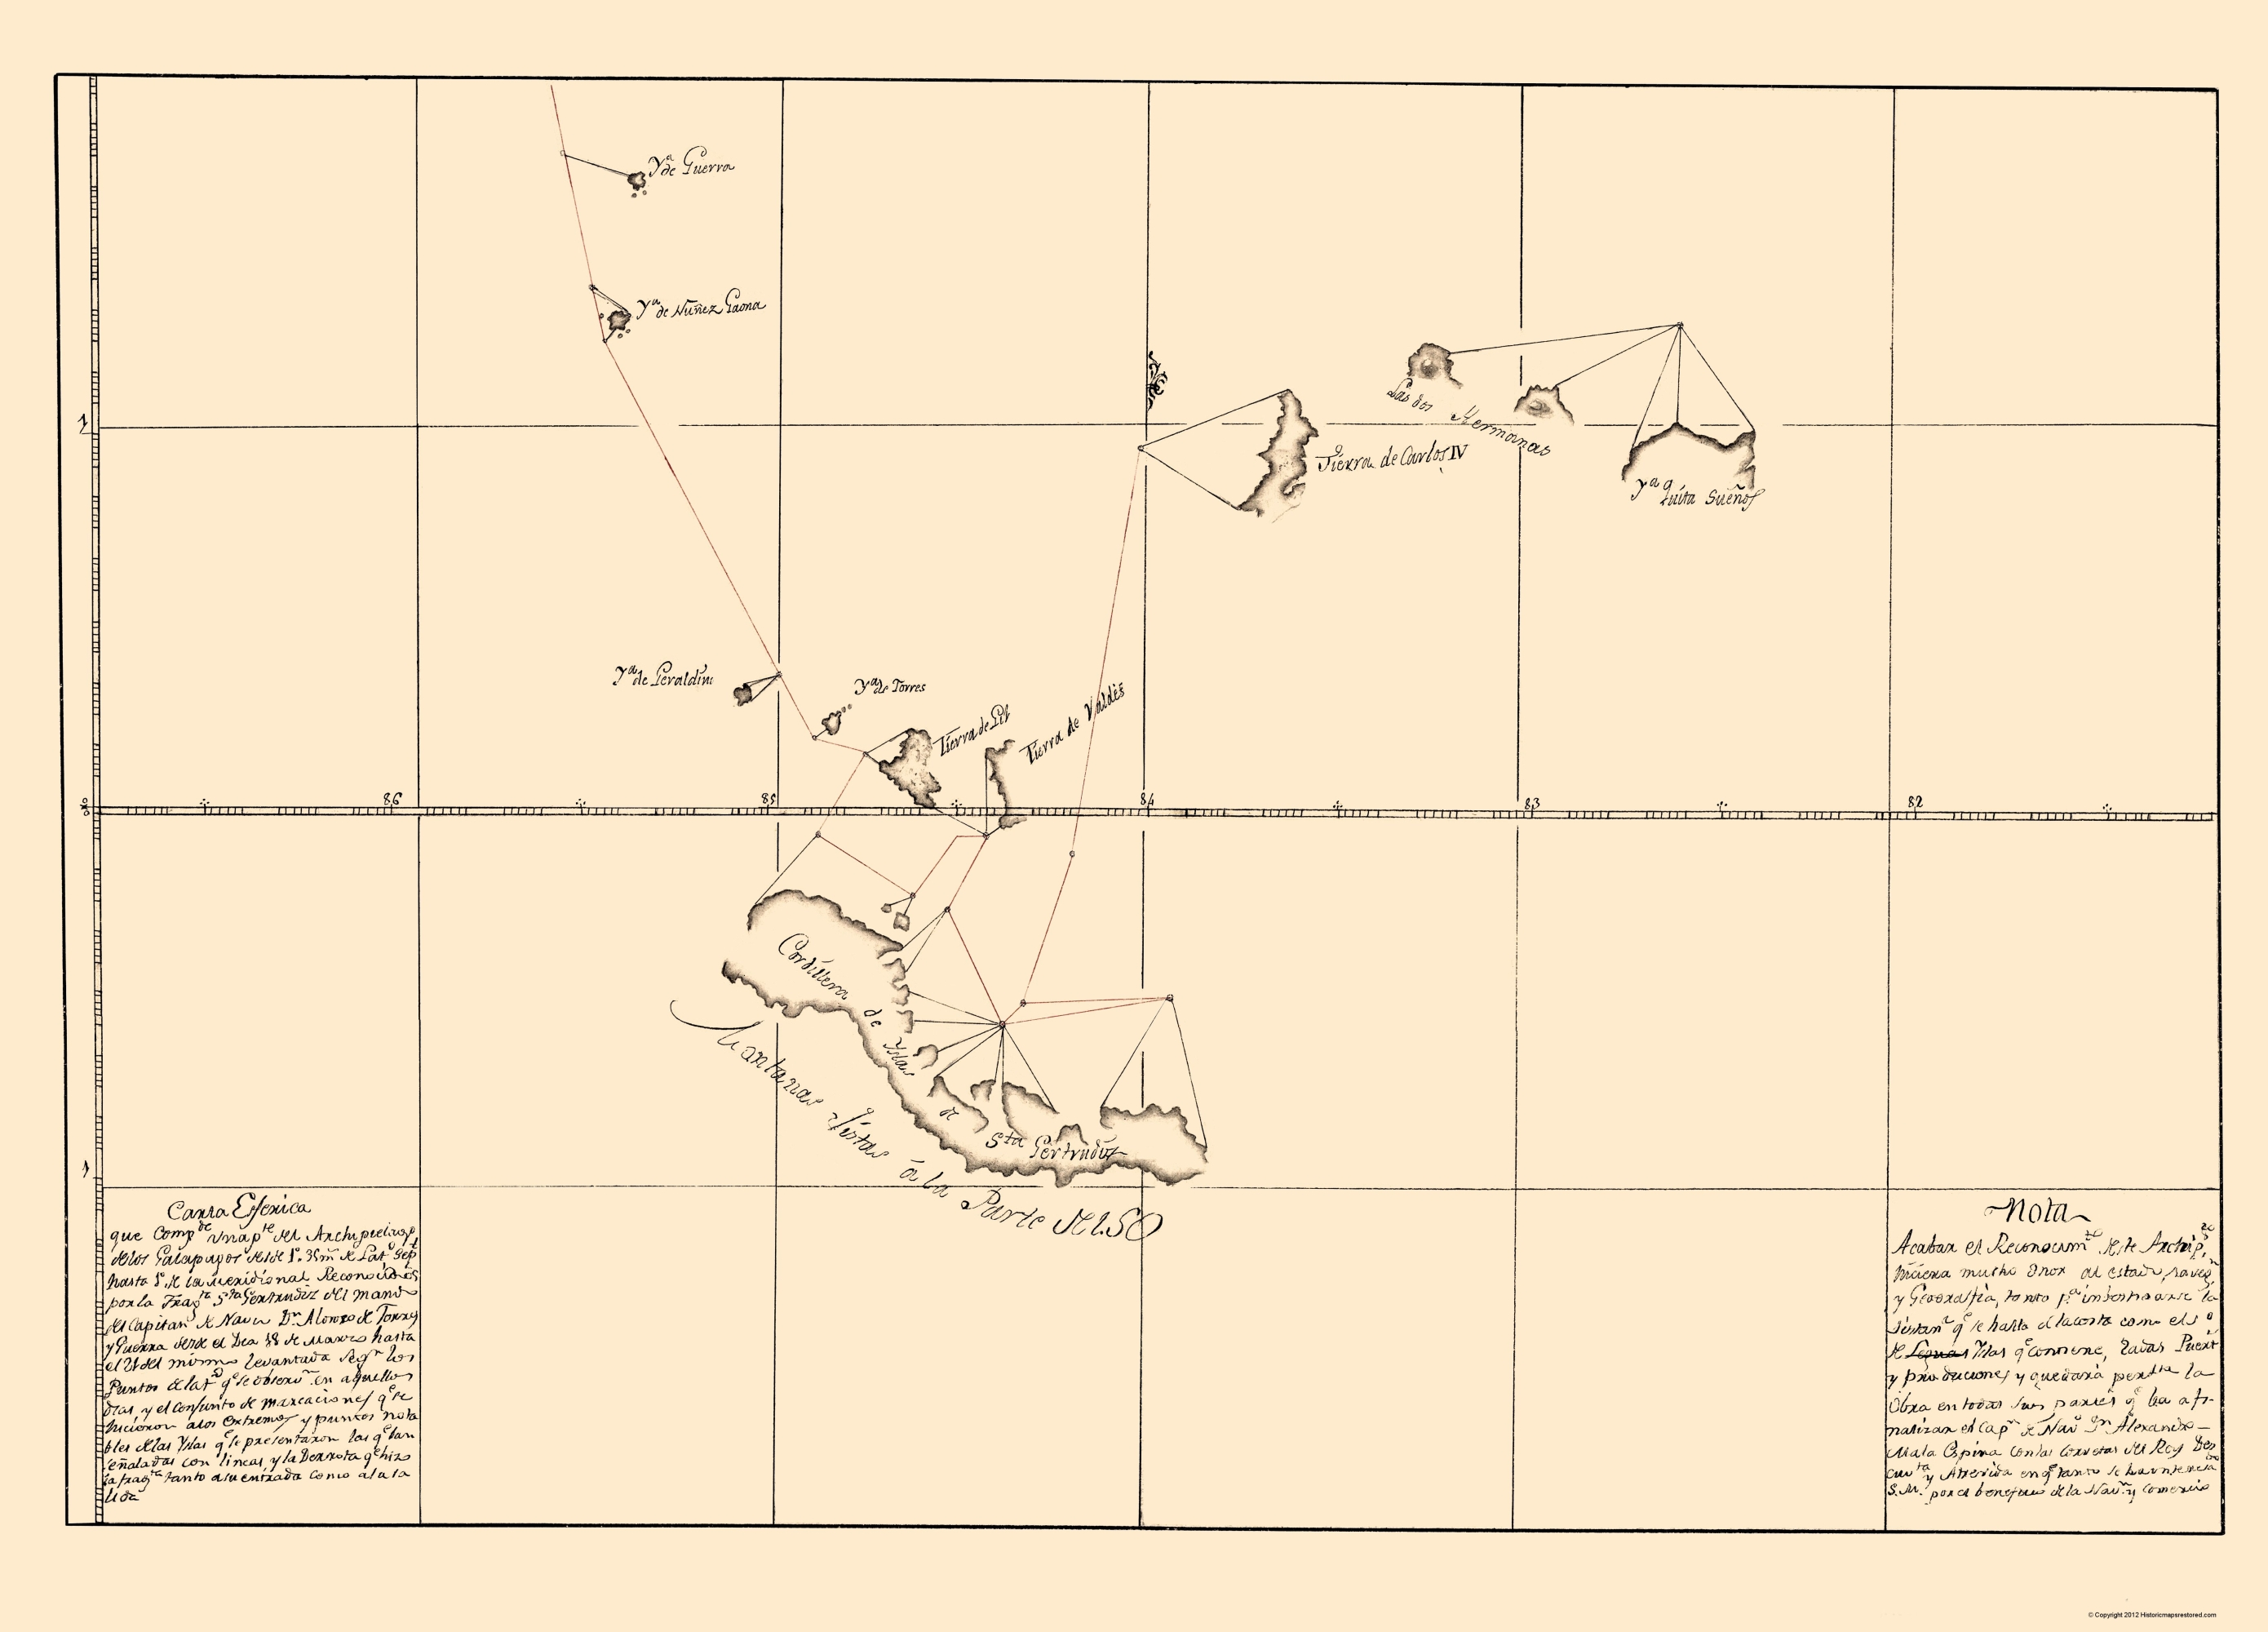 South America Map Galapagos Islands.Old South America Map Galapagos Islands Guerra 1700